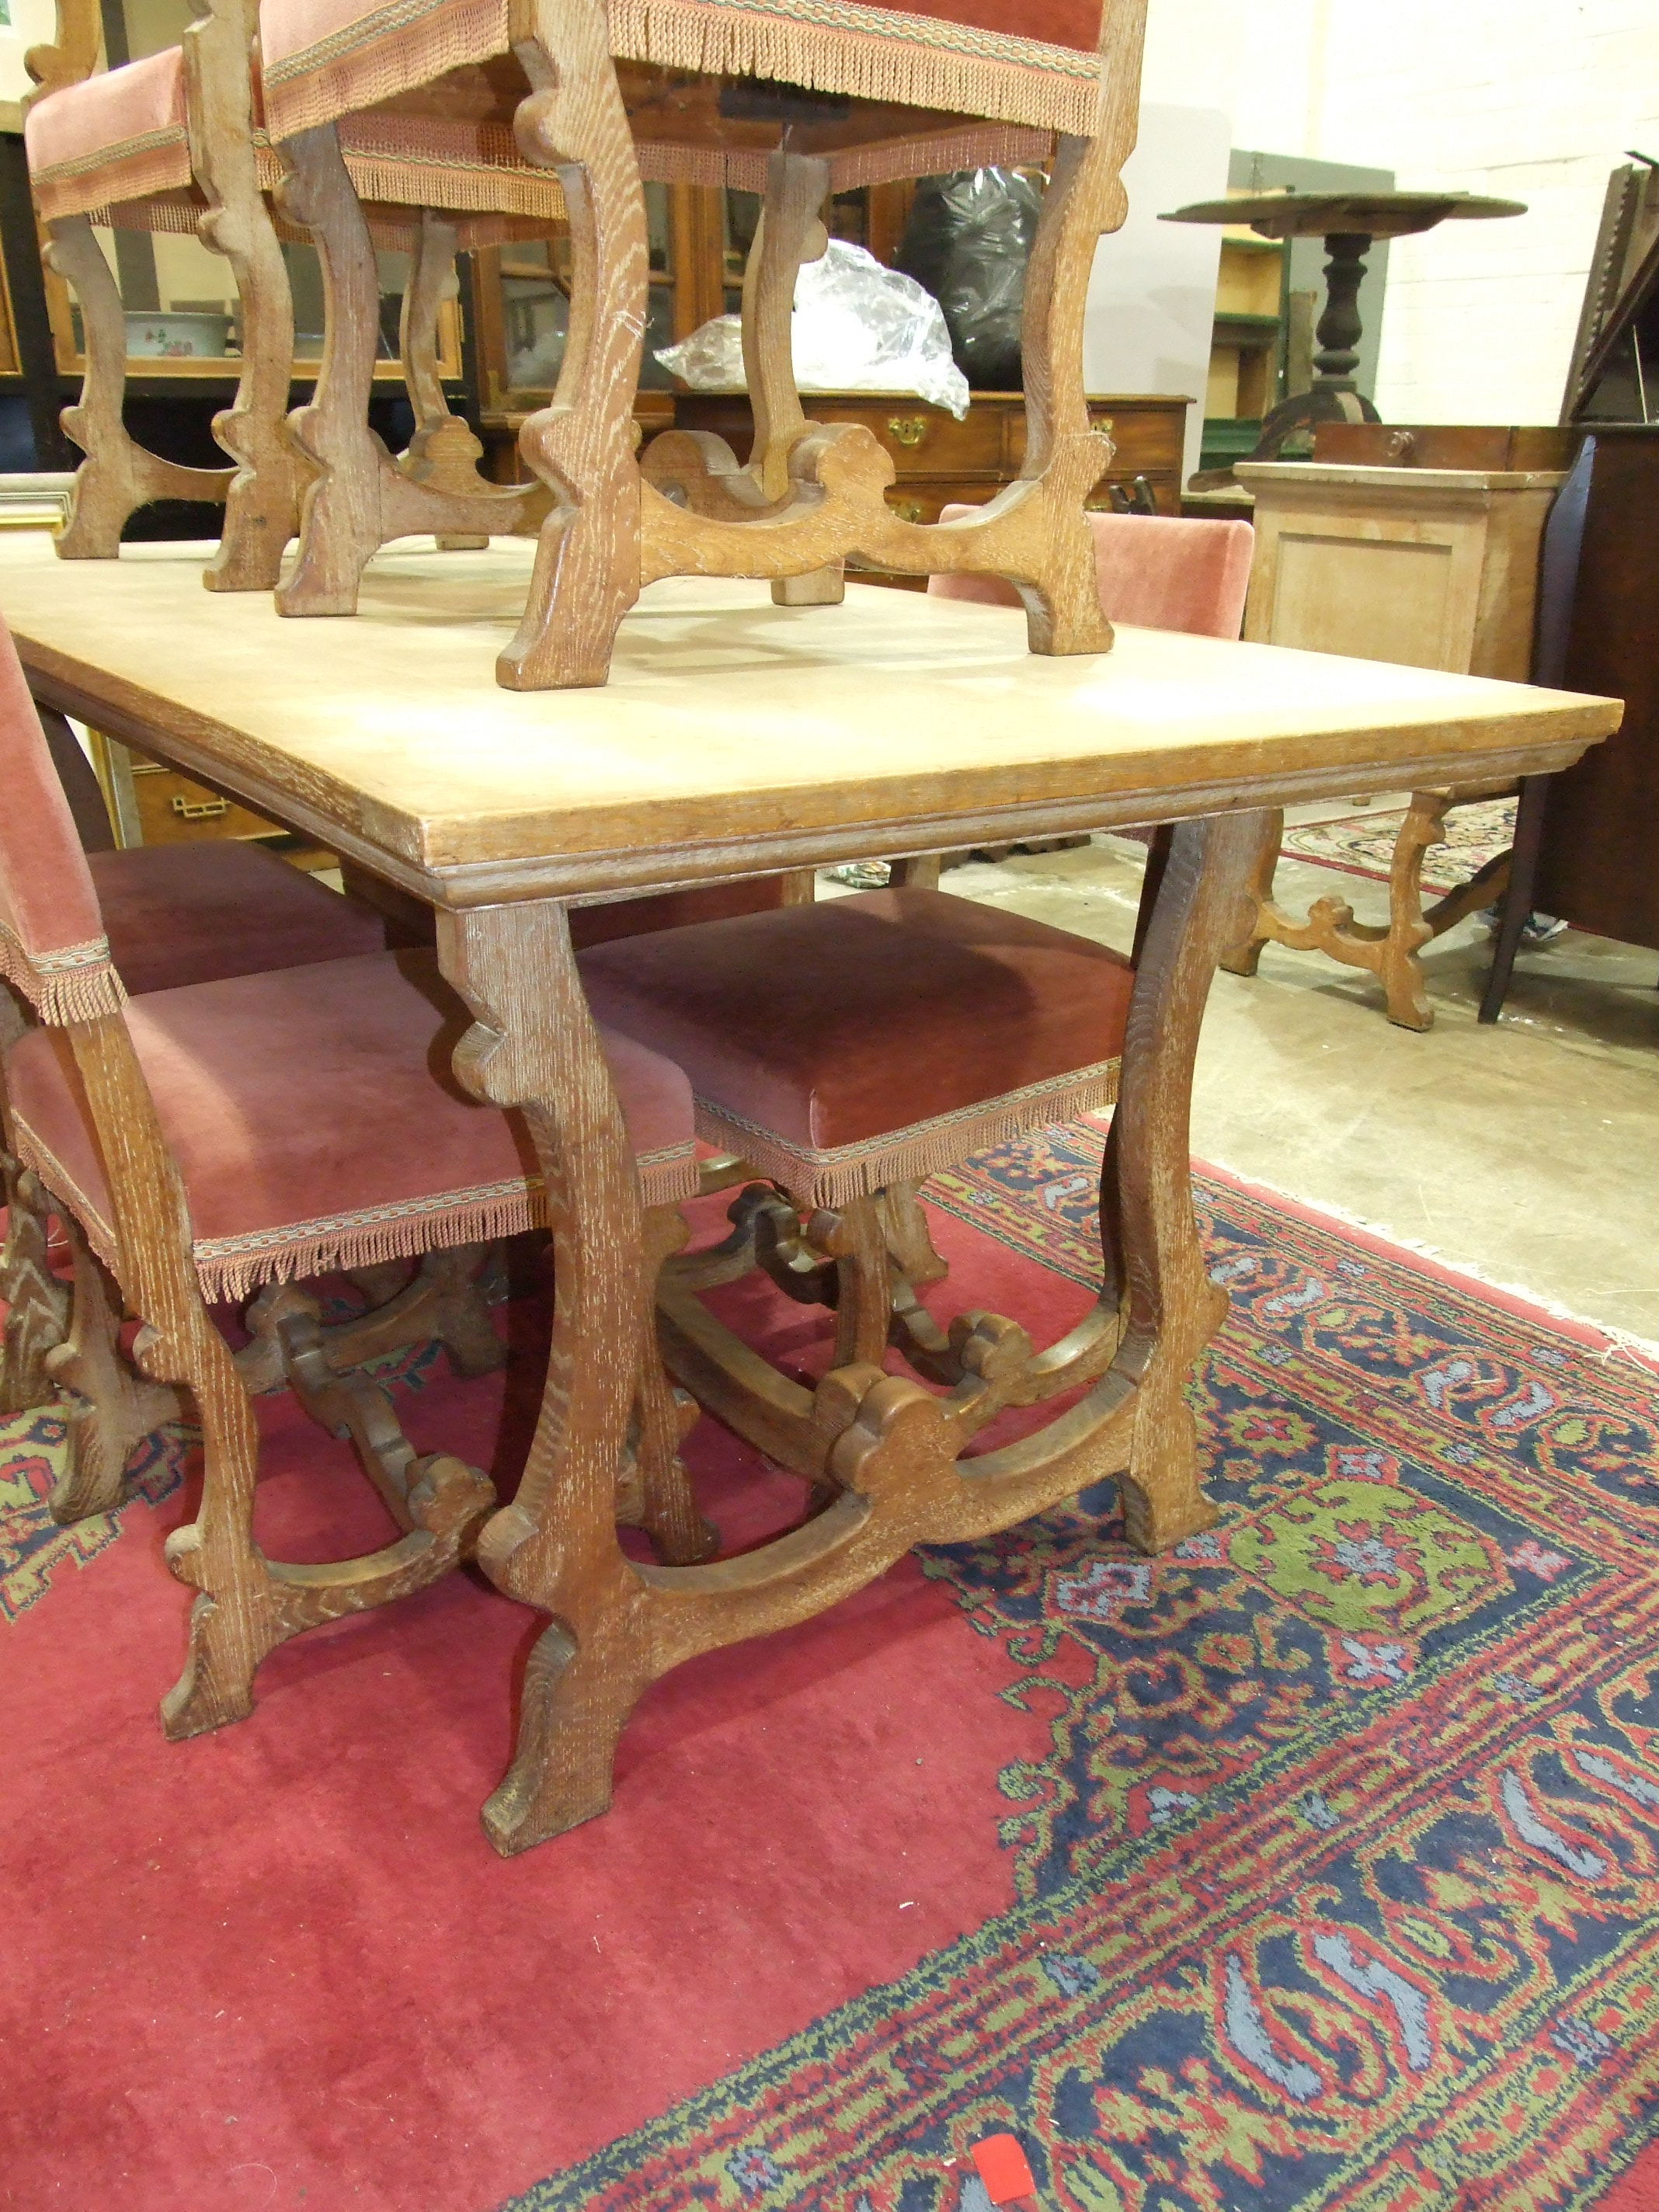 Lot 39 - A limed oak dining suite, comprising: a rectangular dining table, 181.5 x 86cm, a sideboard and